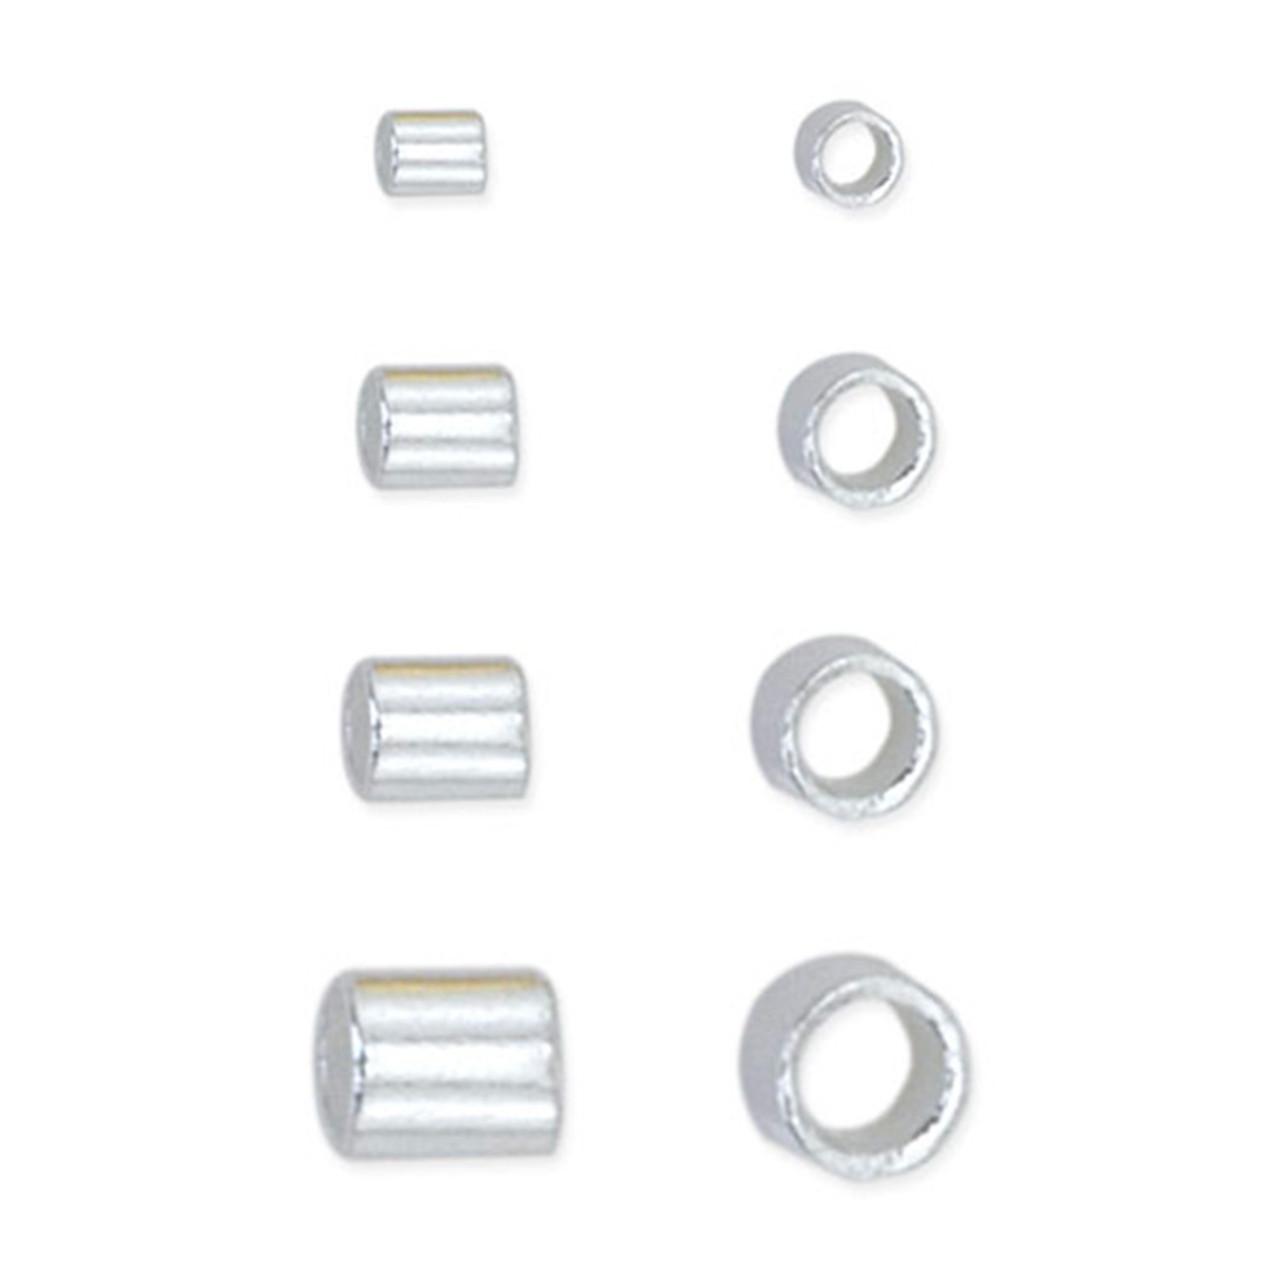 Crimp Tube Variety Pack, Size 1, 2, 3, 4, Silver Plated, 600 pc